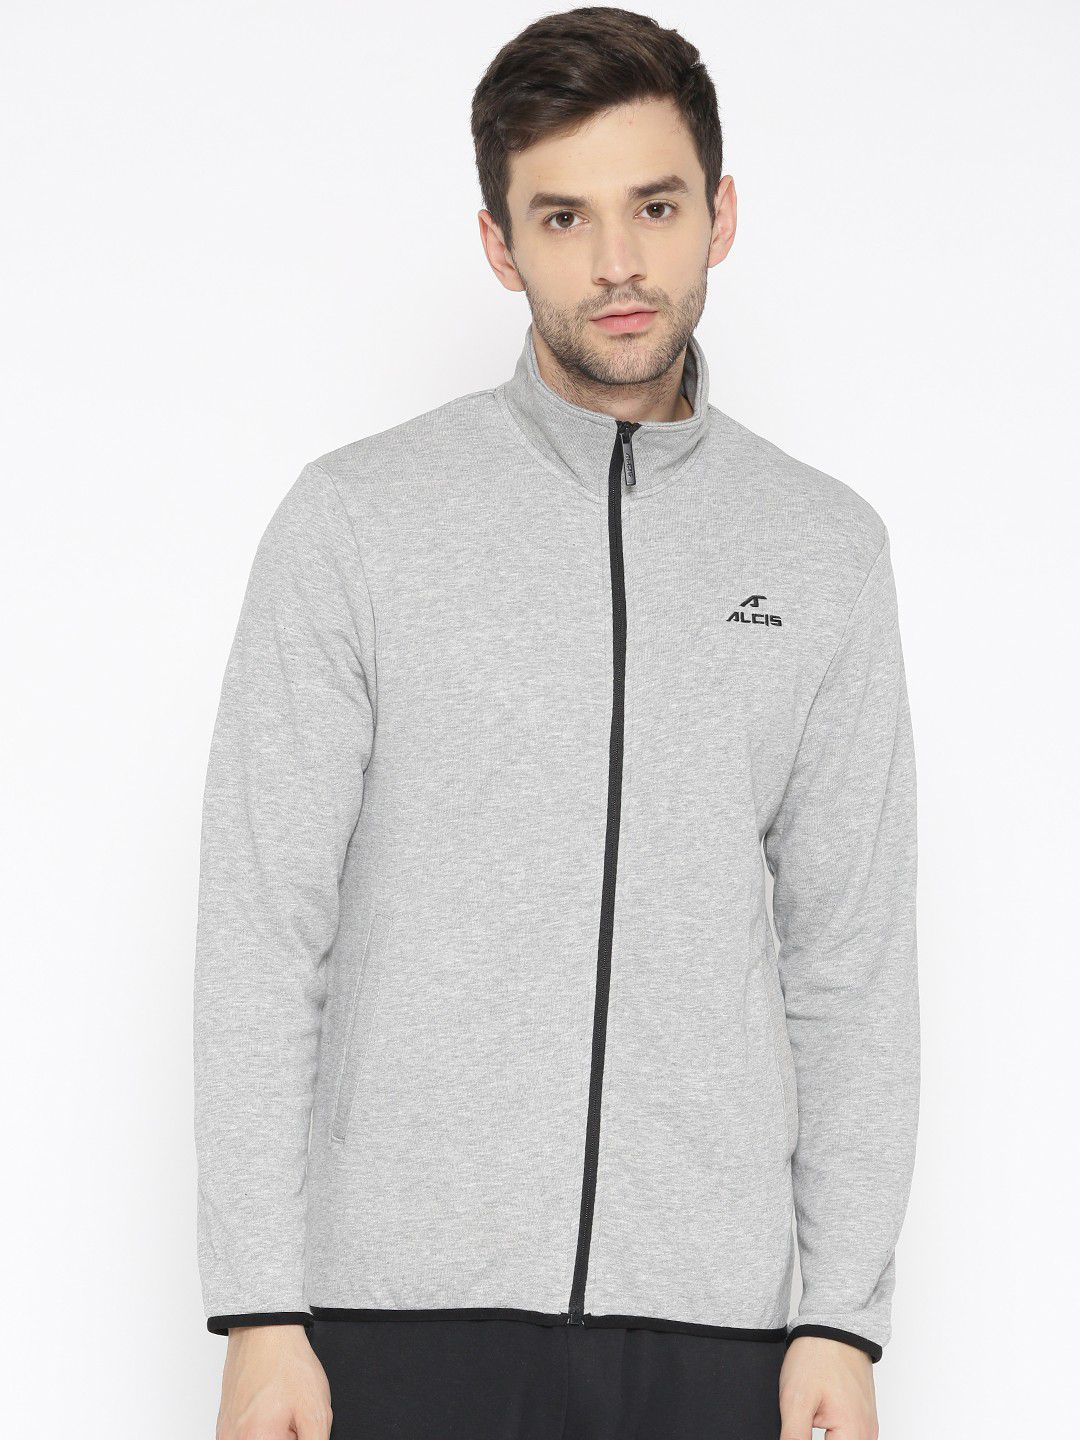 Alcis Grey Cotton Polyester Fleece Jacket Single Pack